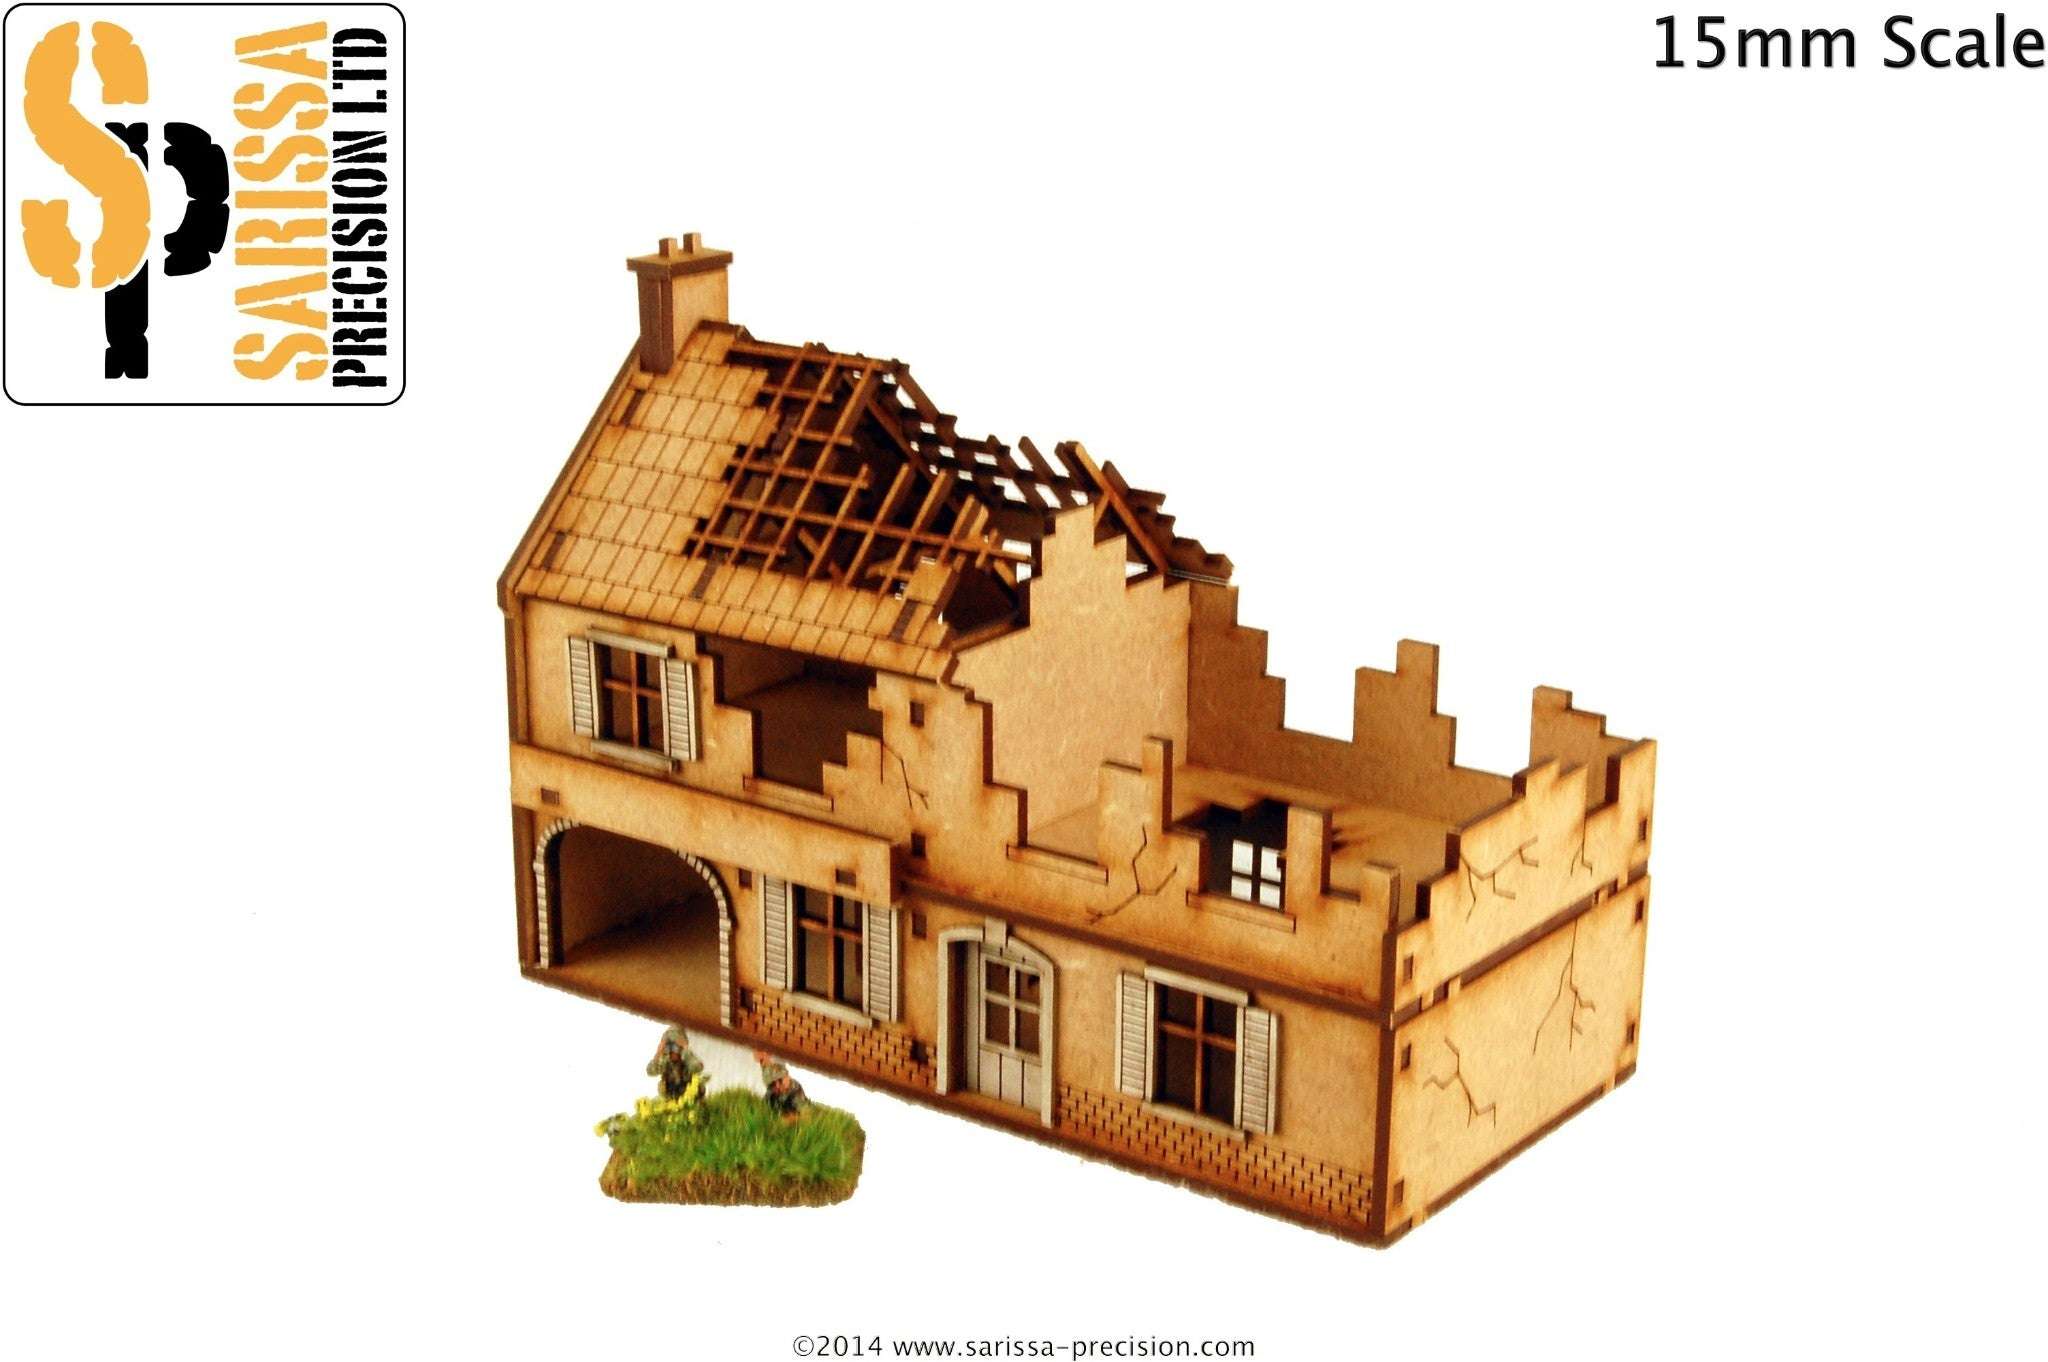 Destroyed Large Farmhouse - 15mm